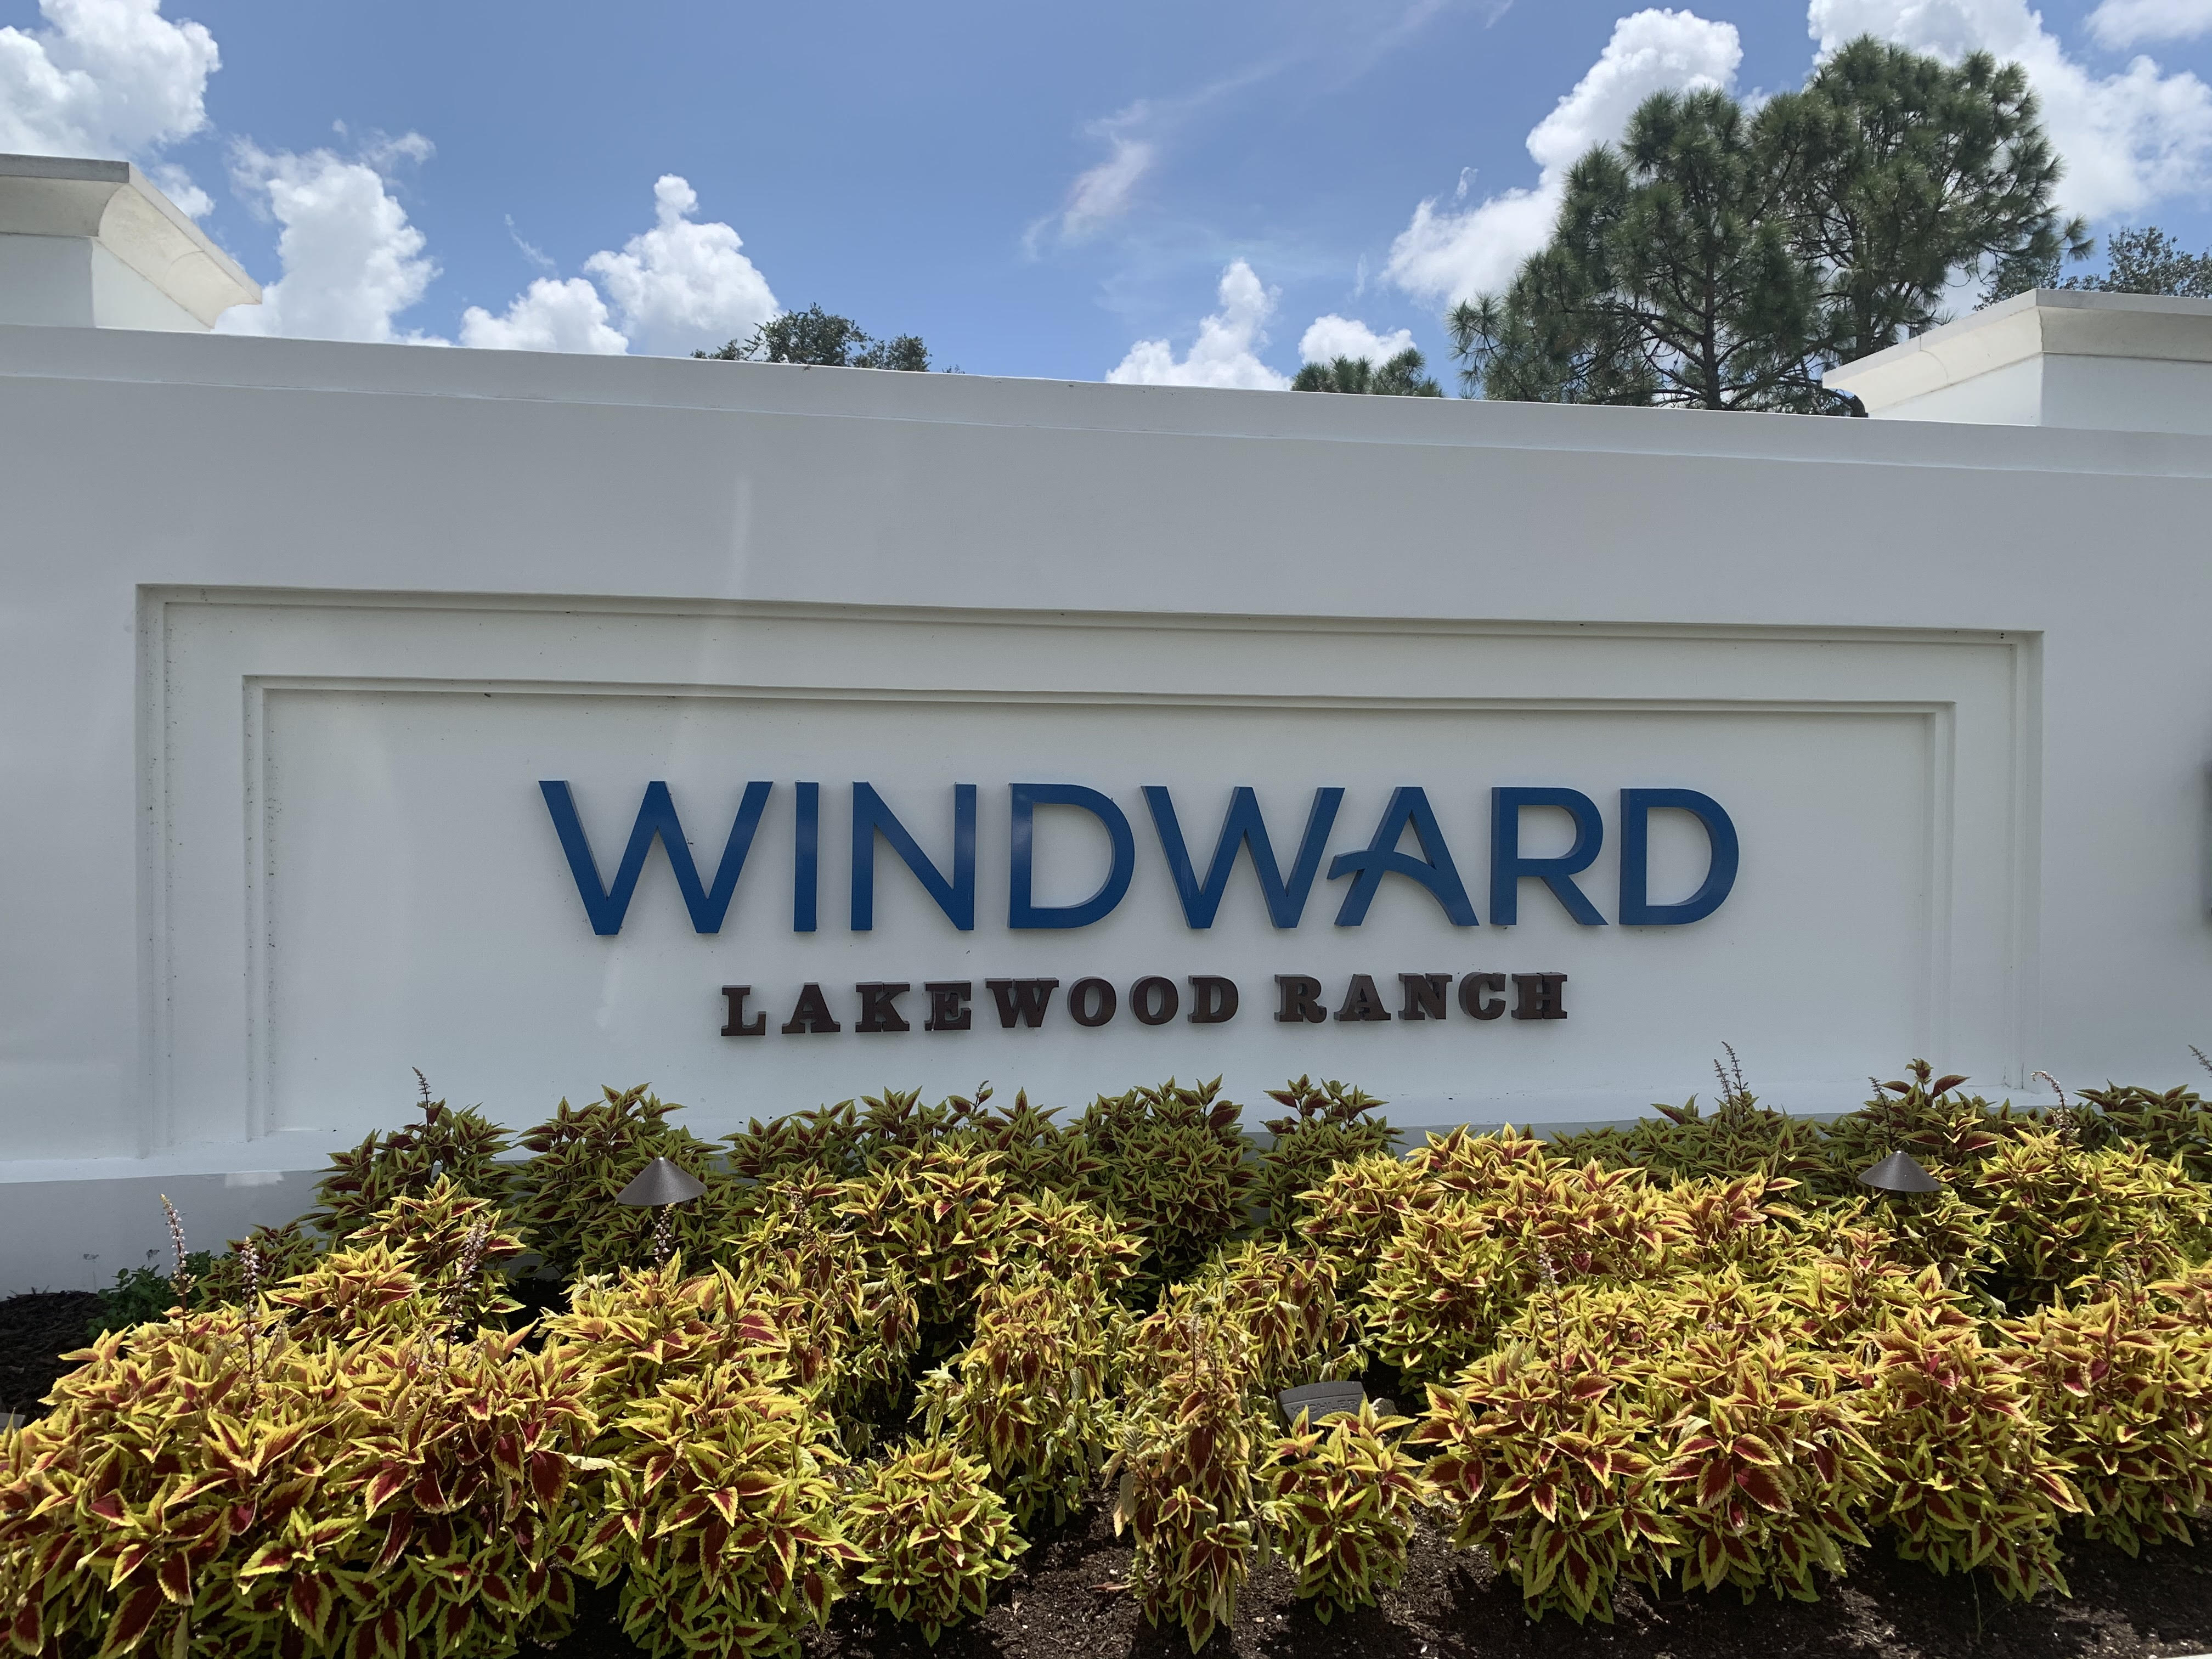 Winward at Lakewood Ranch